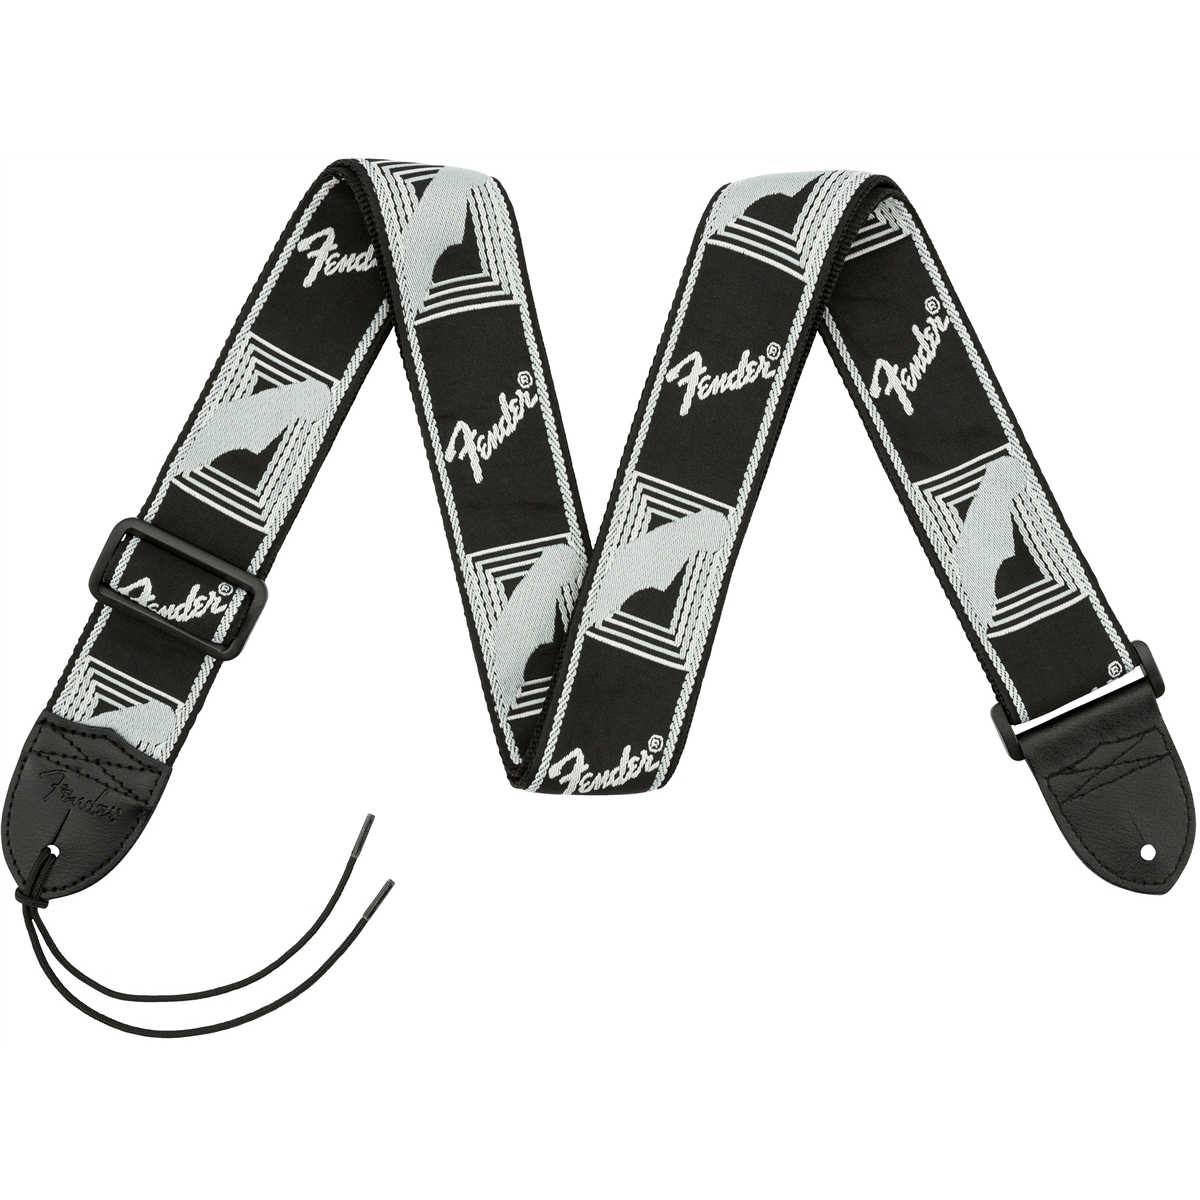 "Fender® 2"" Monogrammed Straps, Black/Light Grey/Dark Grey"